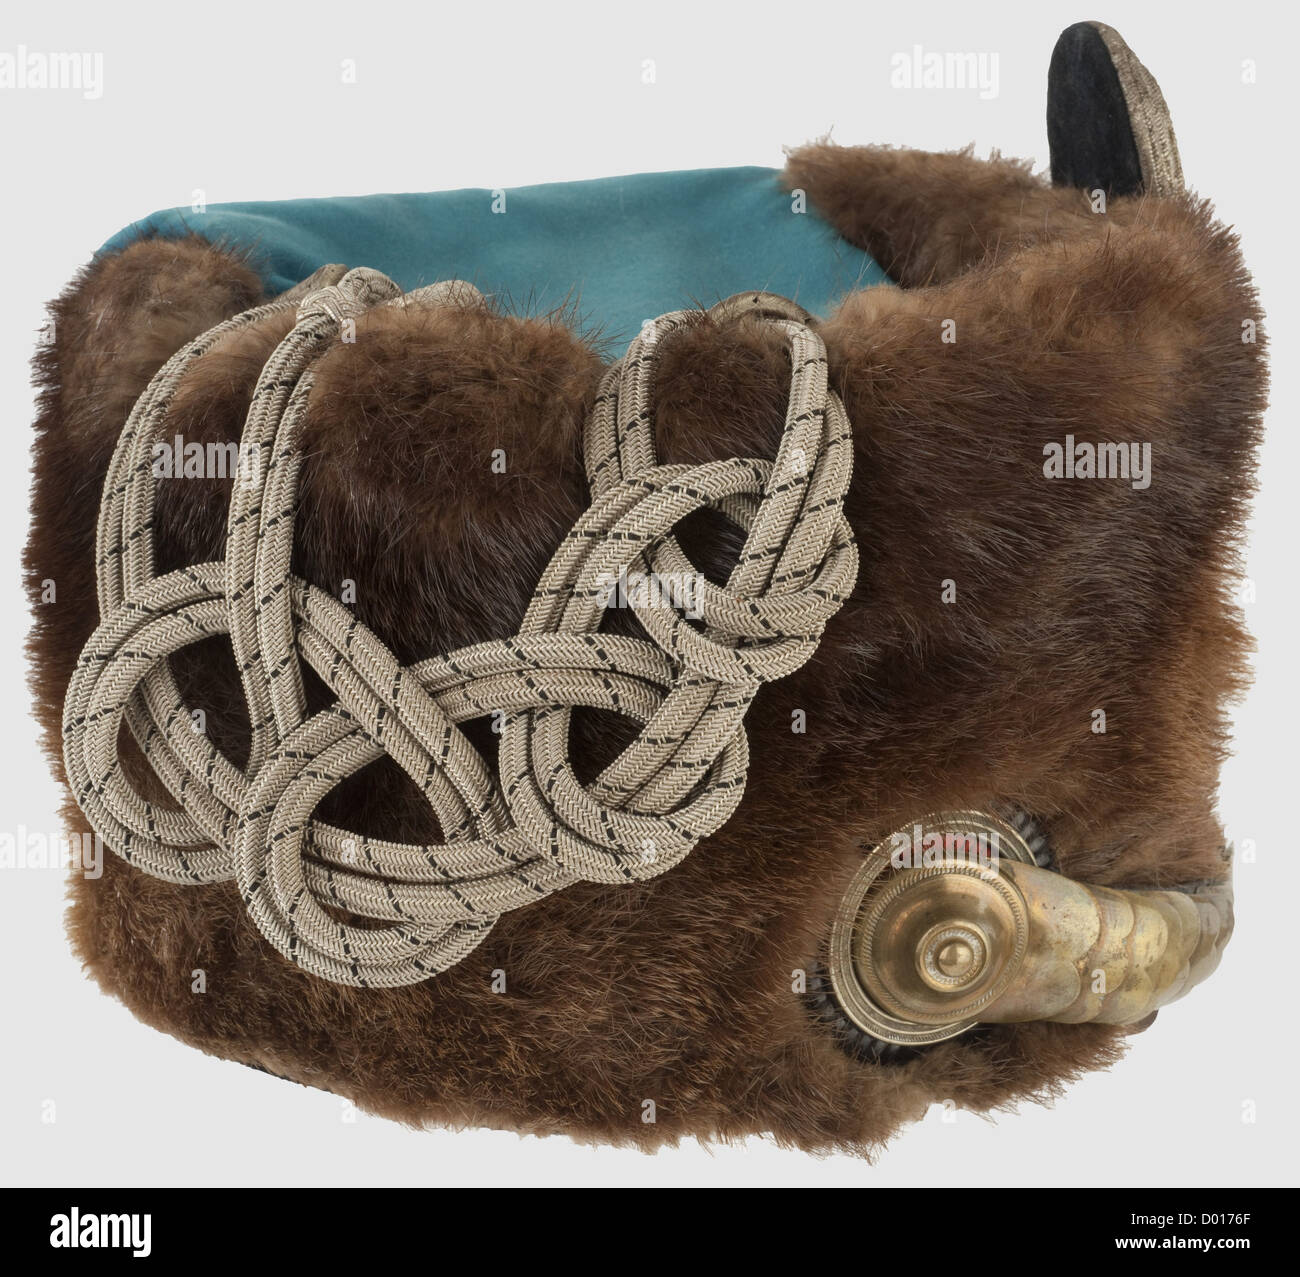 A busby for officers, of the Hussar Regiment No. 8. Possum skin, silver fatherland scroll, convex metal chinscales, - Stock Image